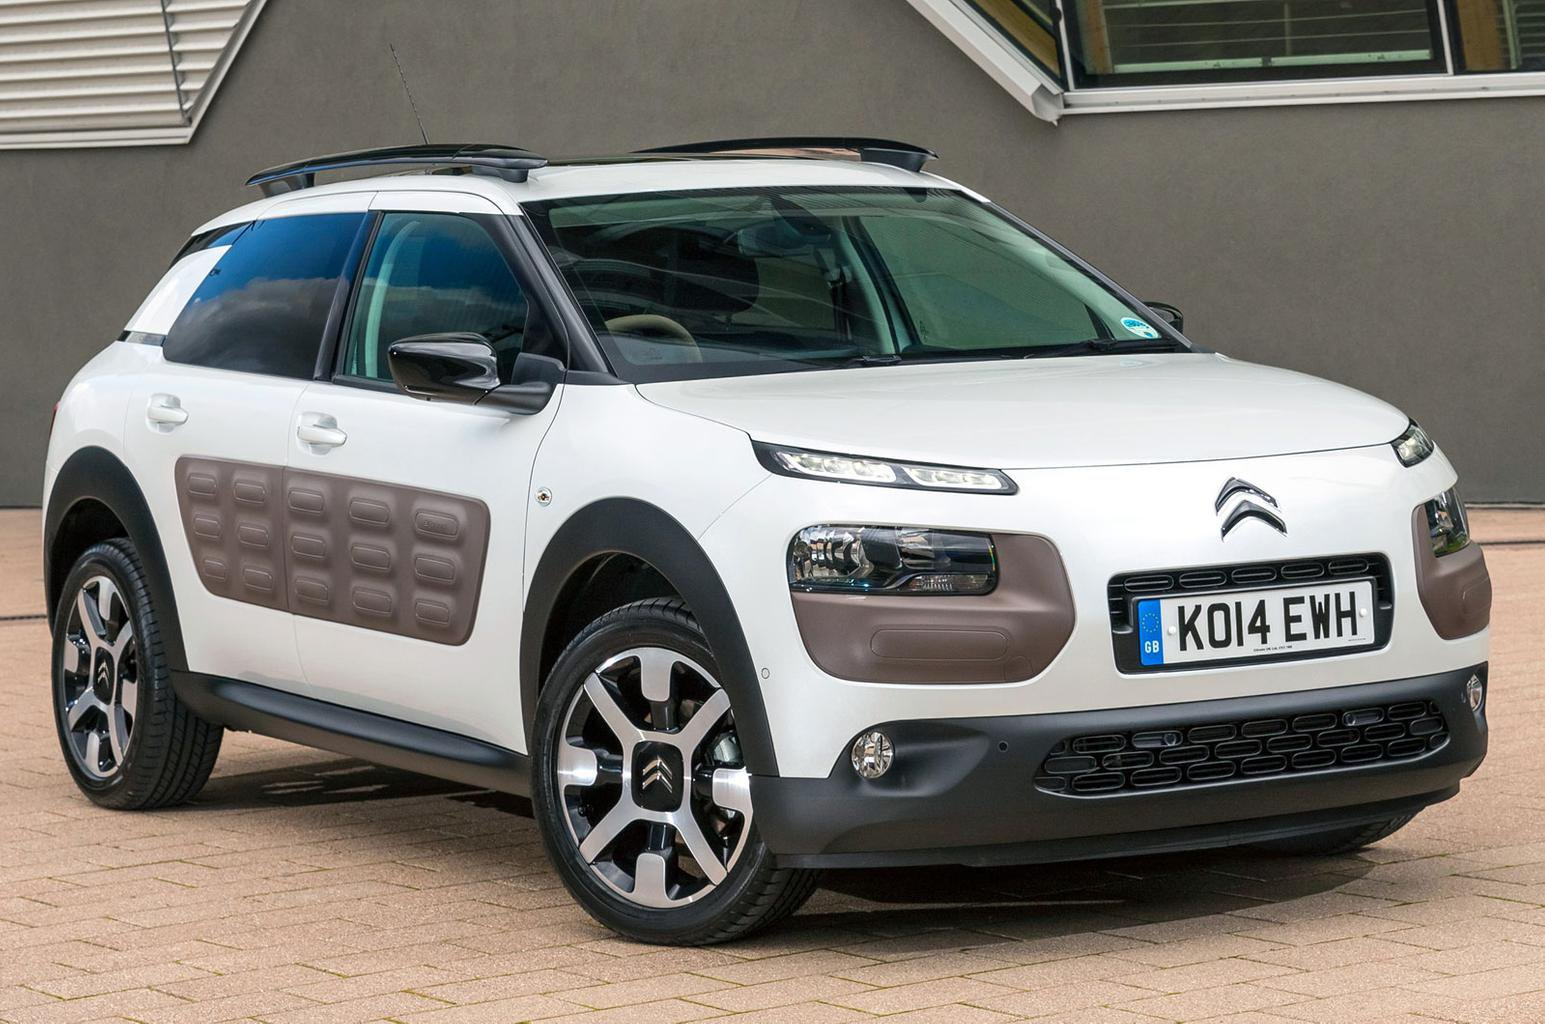 Citroen to compete on style, not price